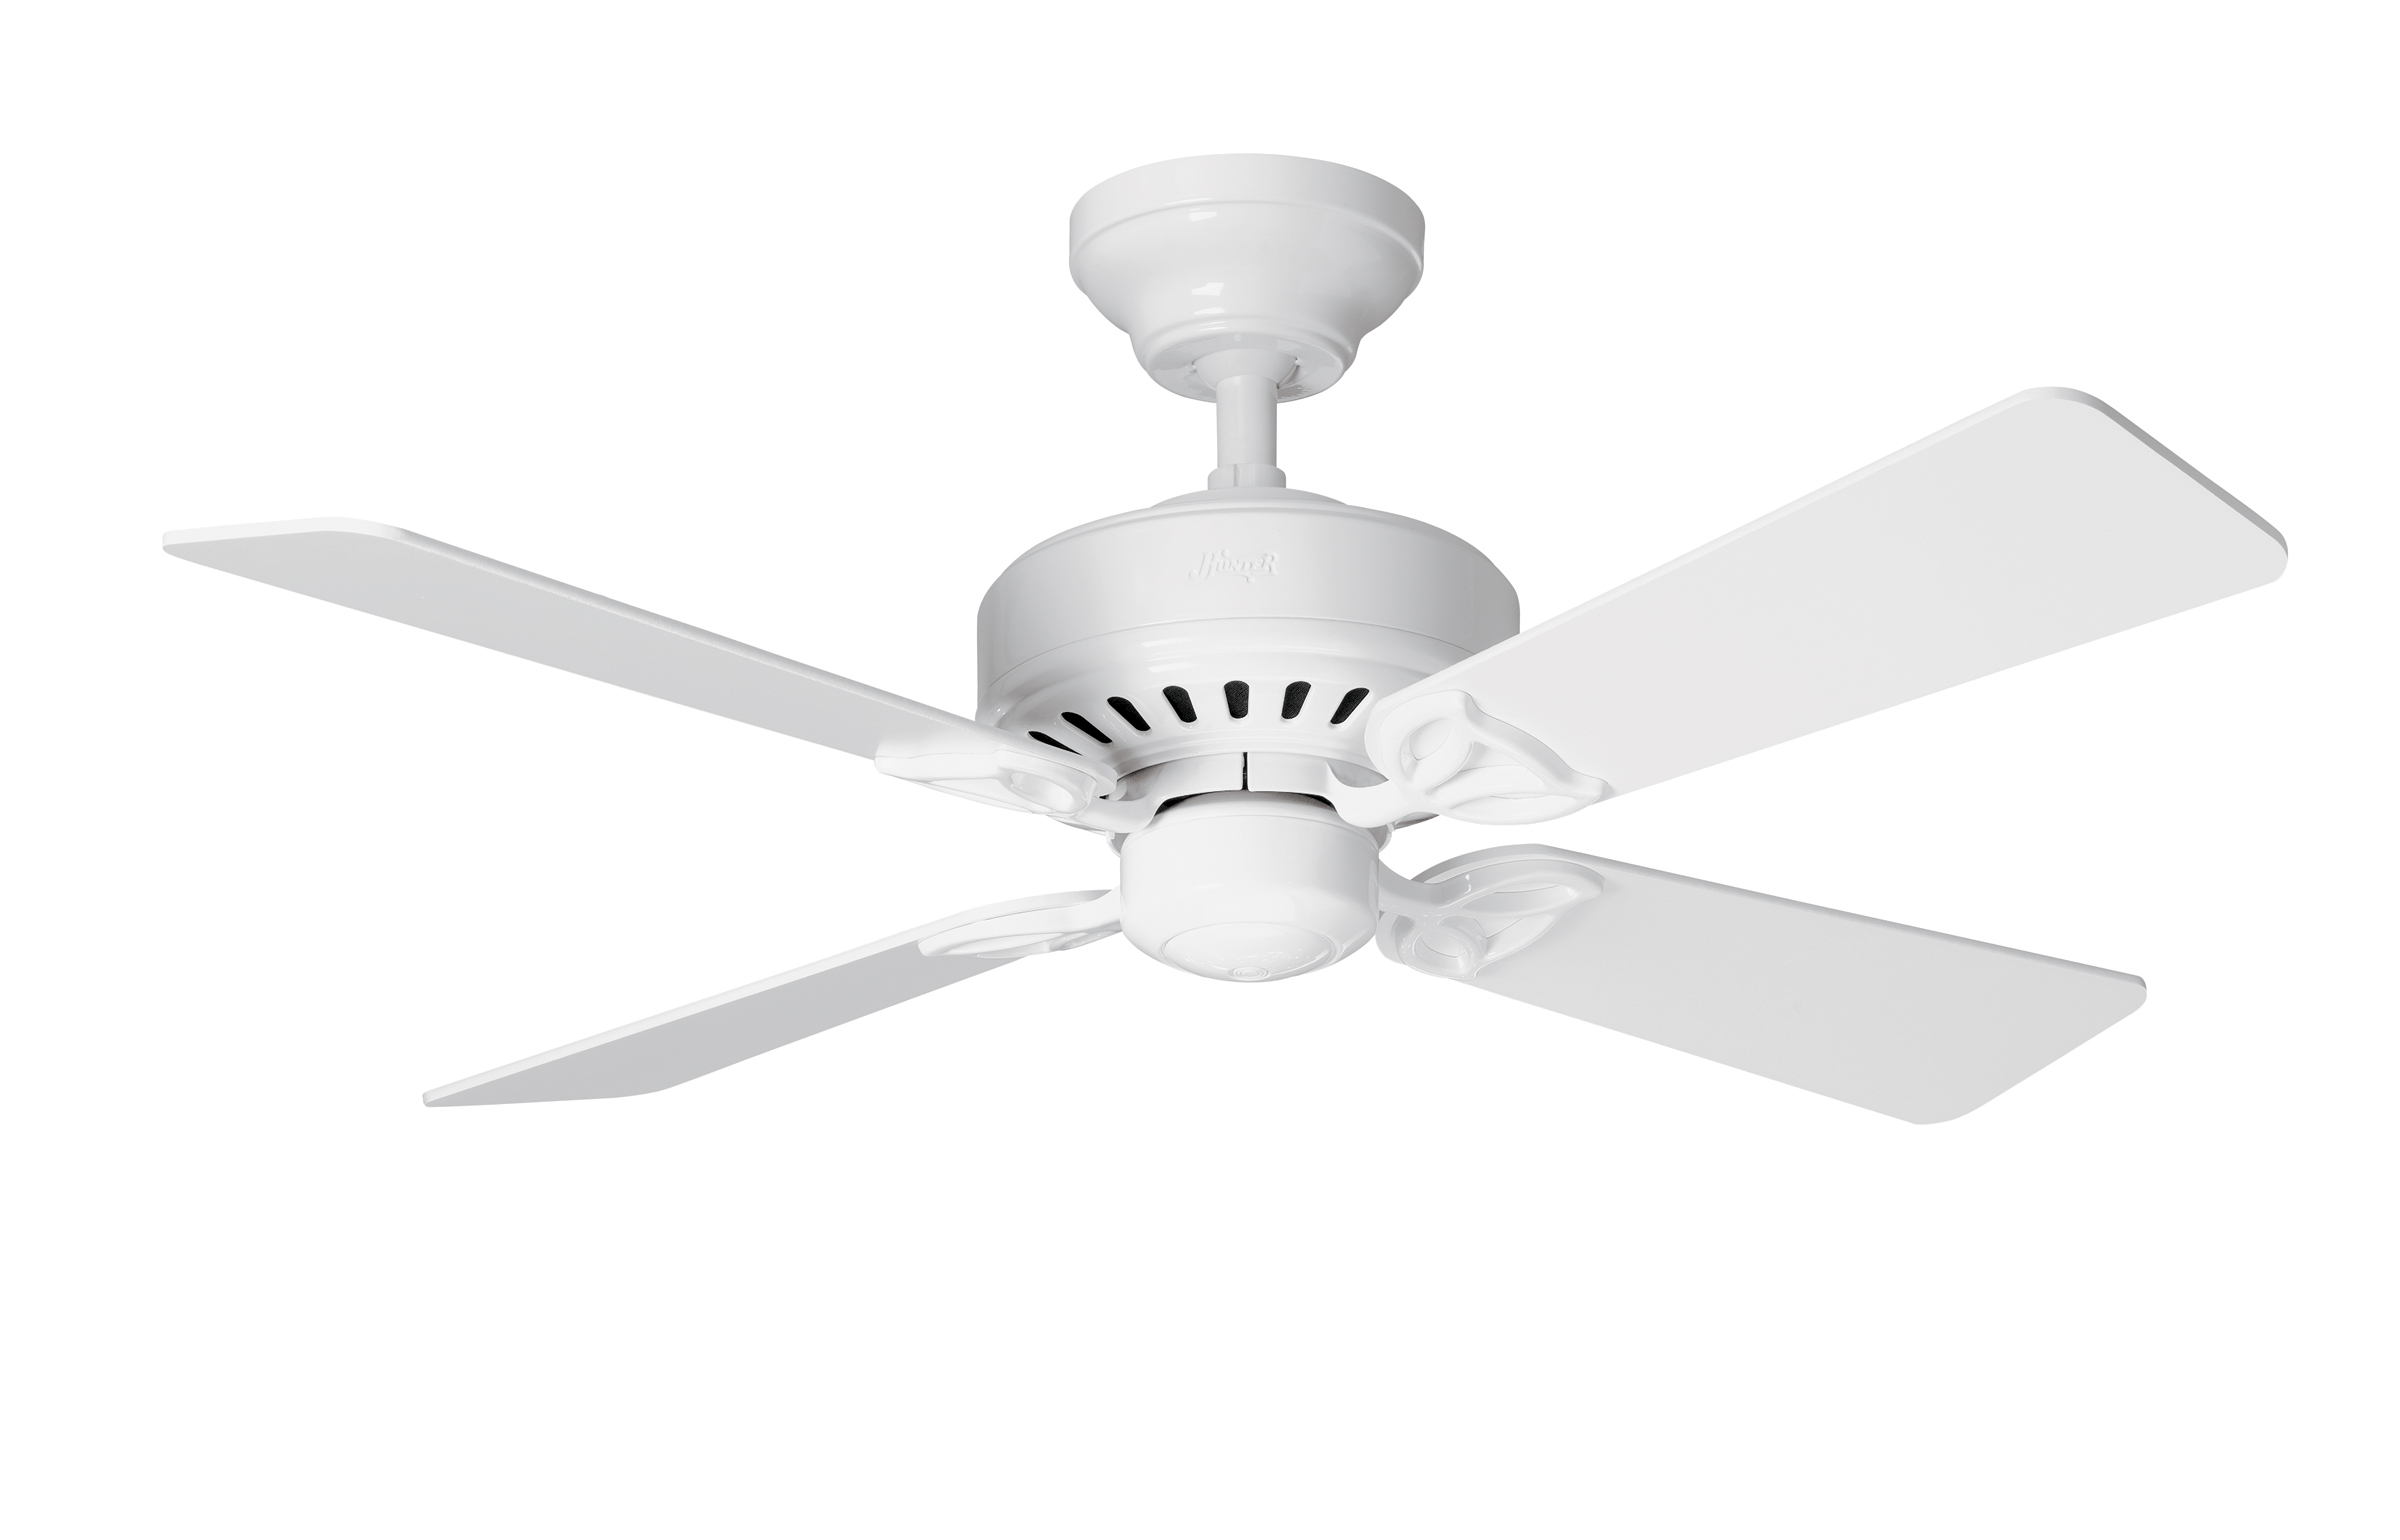 The perfect conservatory ceiling fan for us